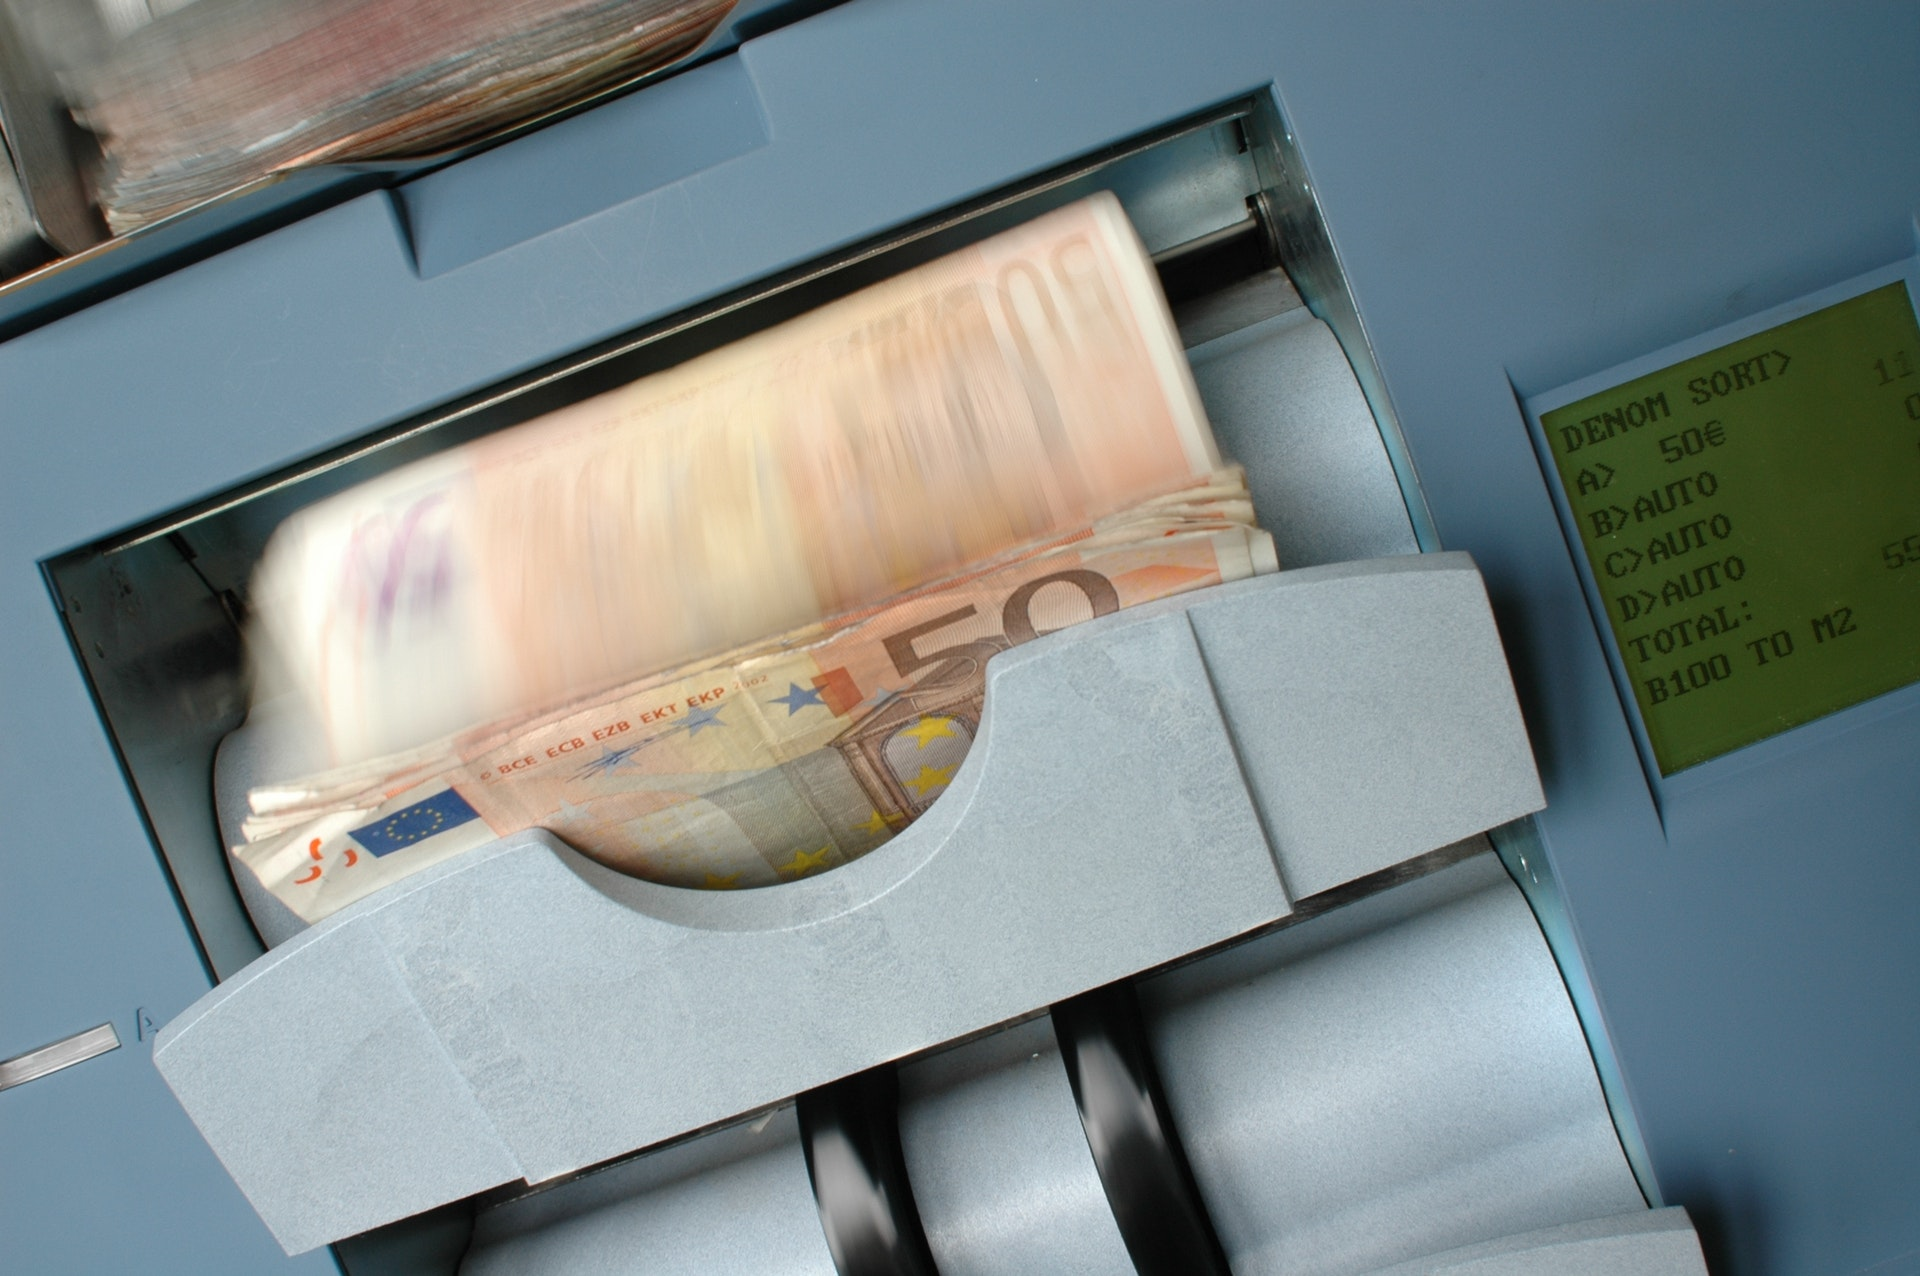 commerzbank bank account opening 50 euro bonus